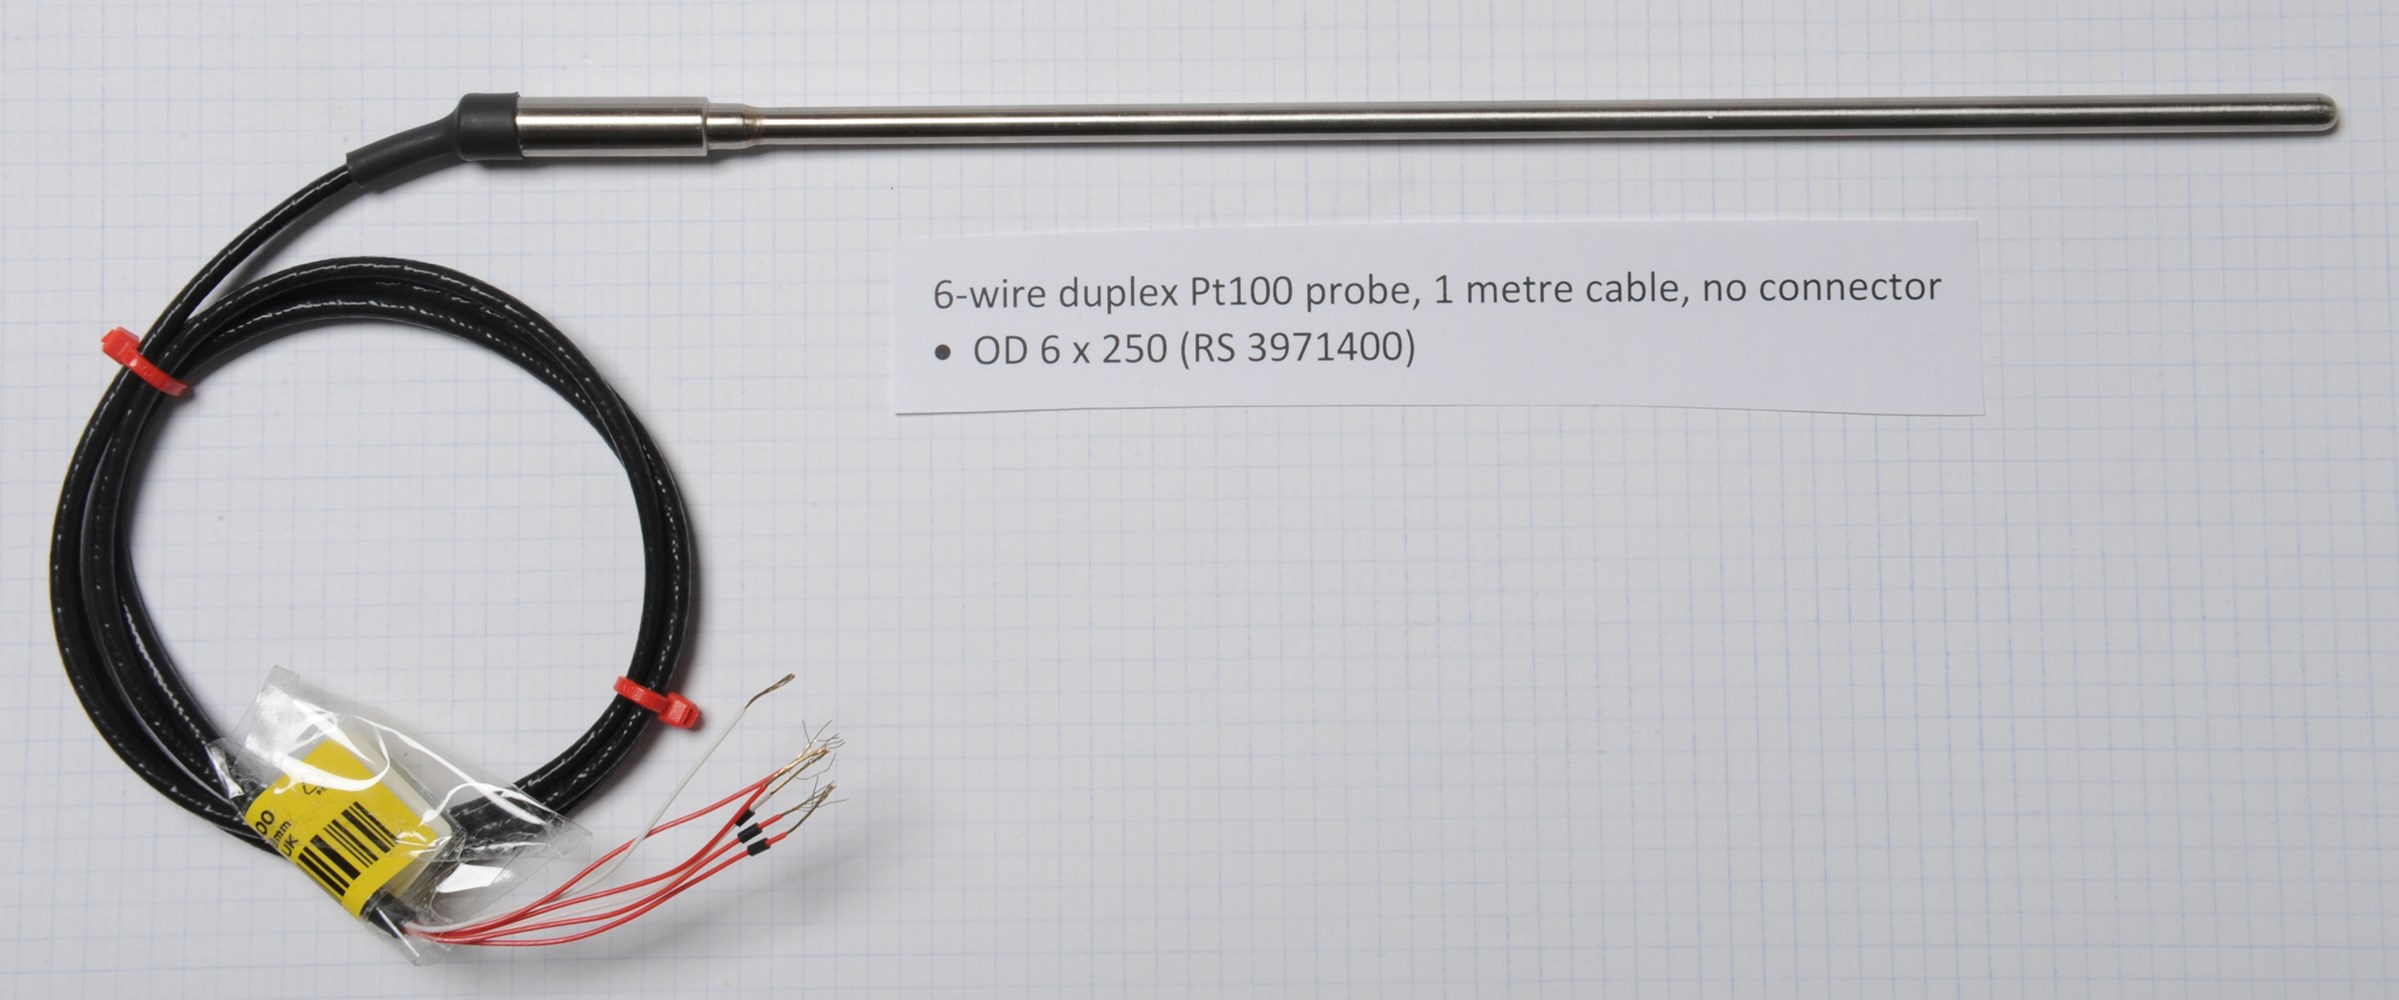 Thermocouples duplex pt100 6 wire probe with 1 metre cable and no connector publicscrutiny Images